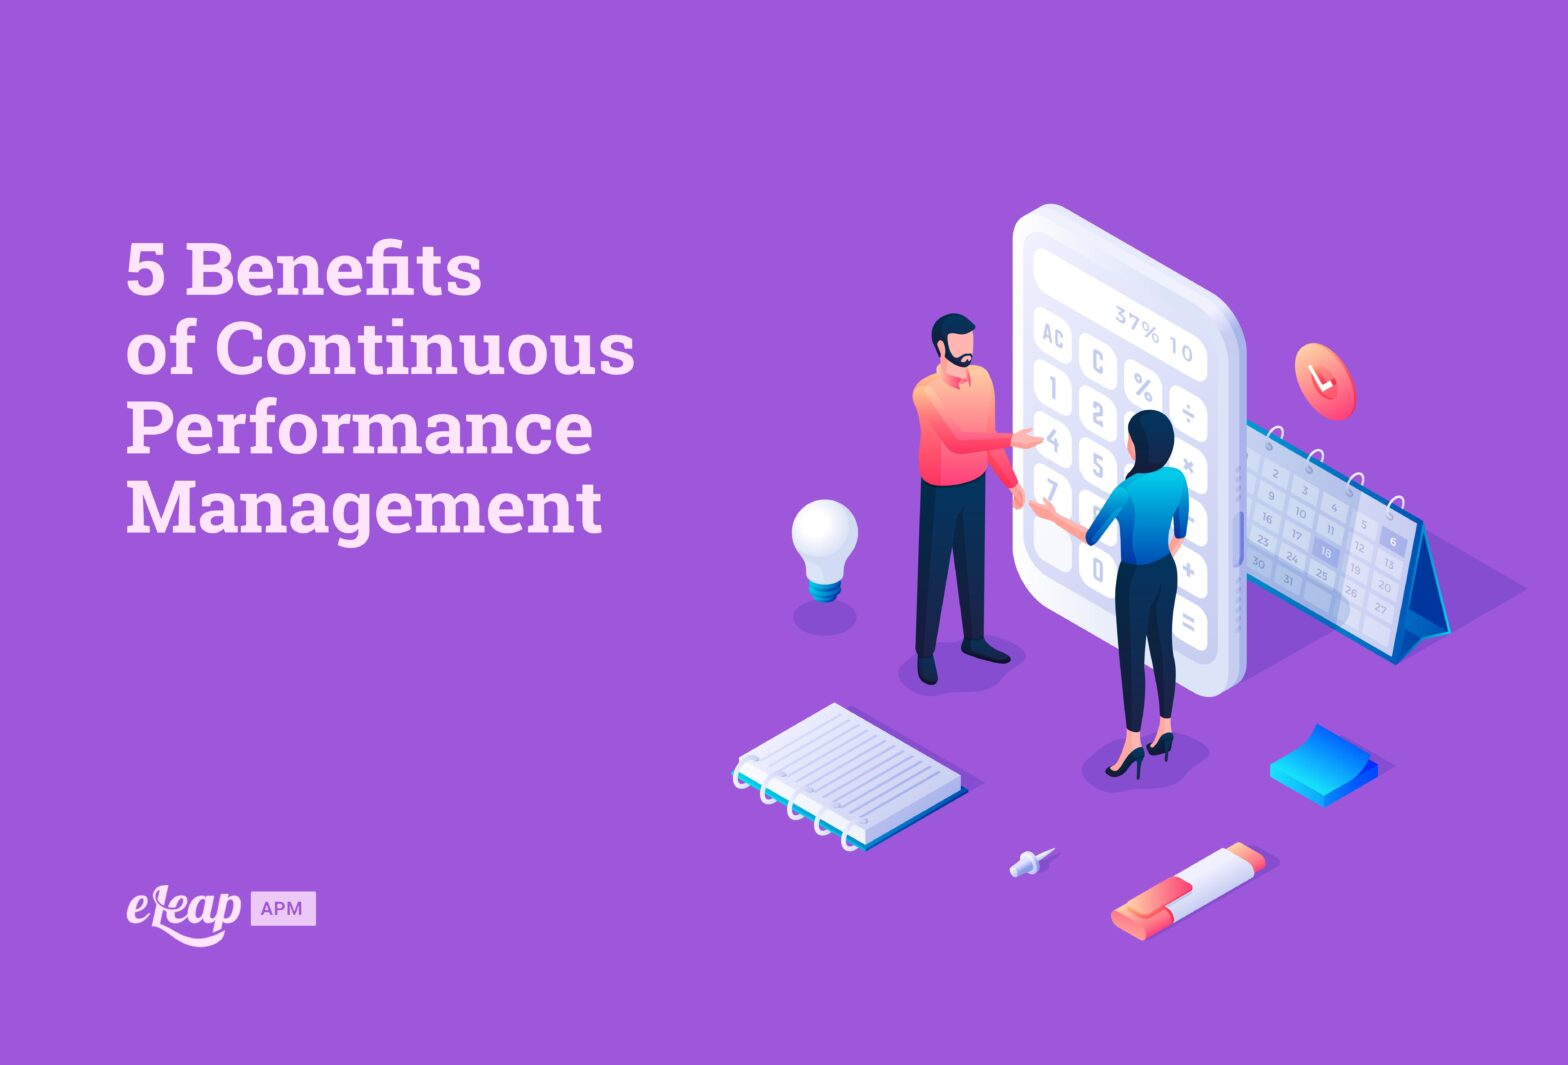 5 Benefits of Continuous Performance Management